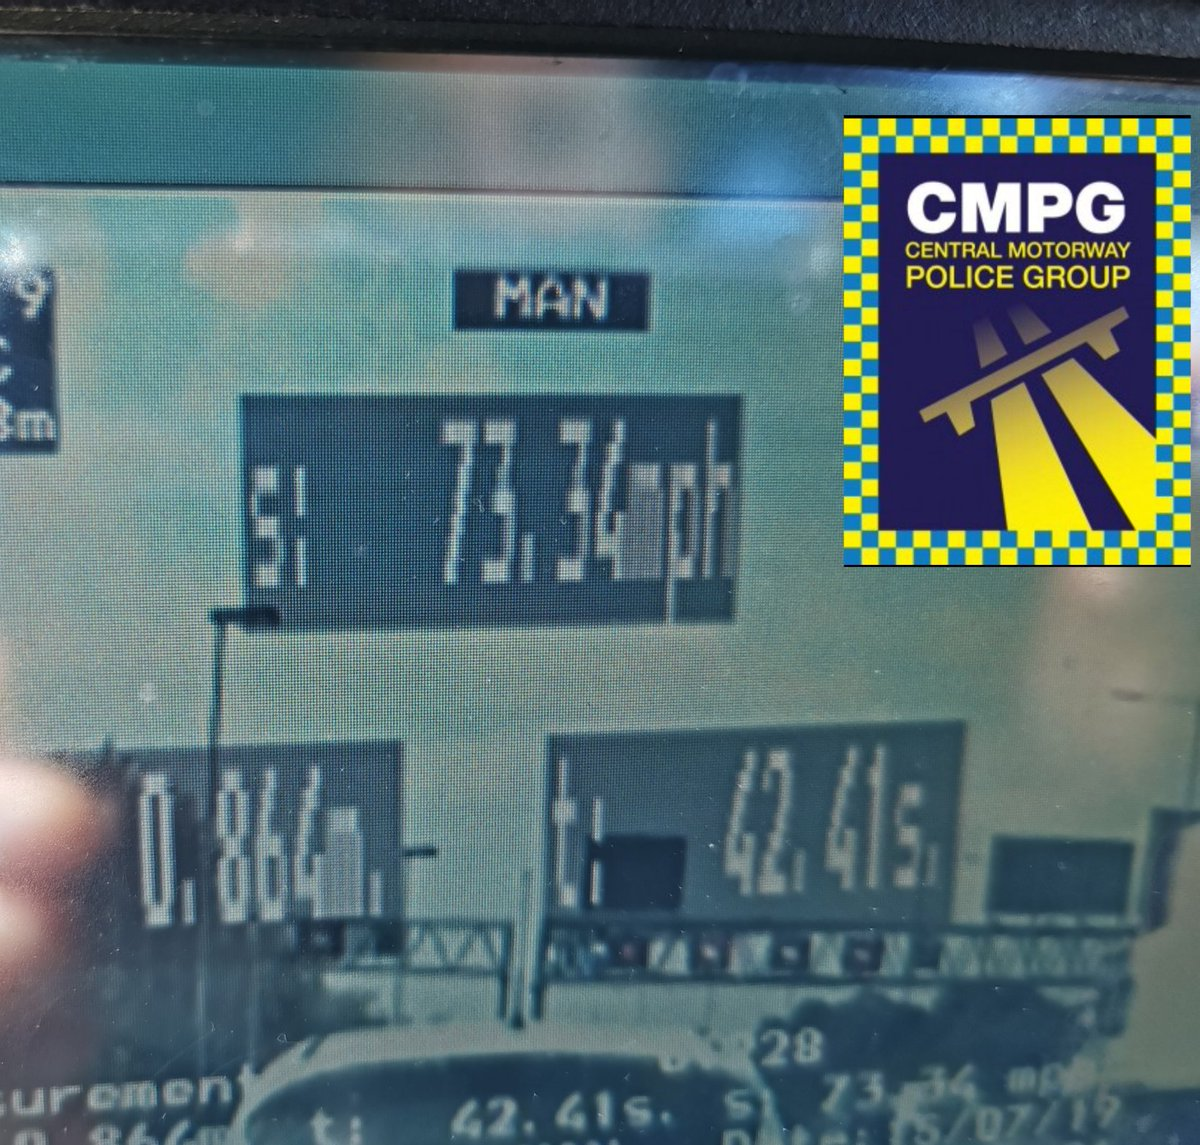 This driver drew attention by speeding through a 50mph limit on the M6. Speed check showed an average of 73 MPH. Driver reported and can look forward to points on their licence. AD